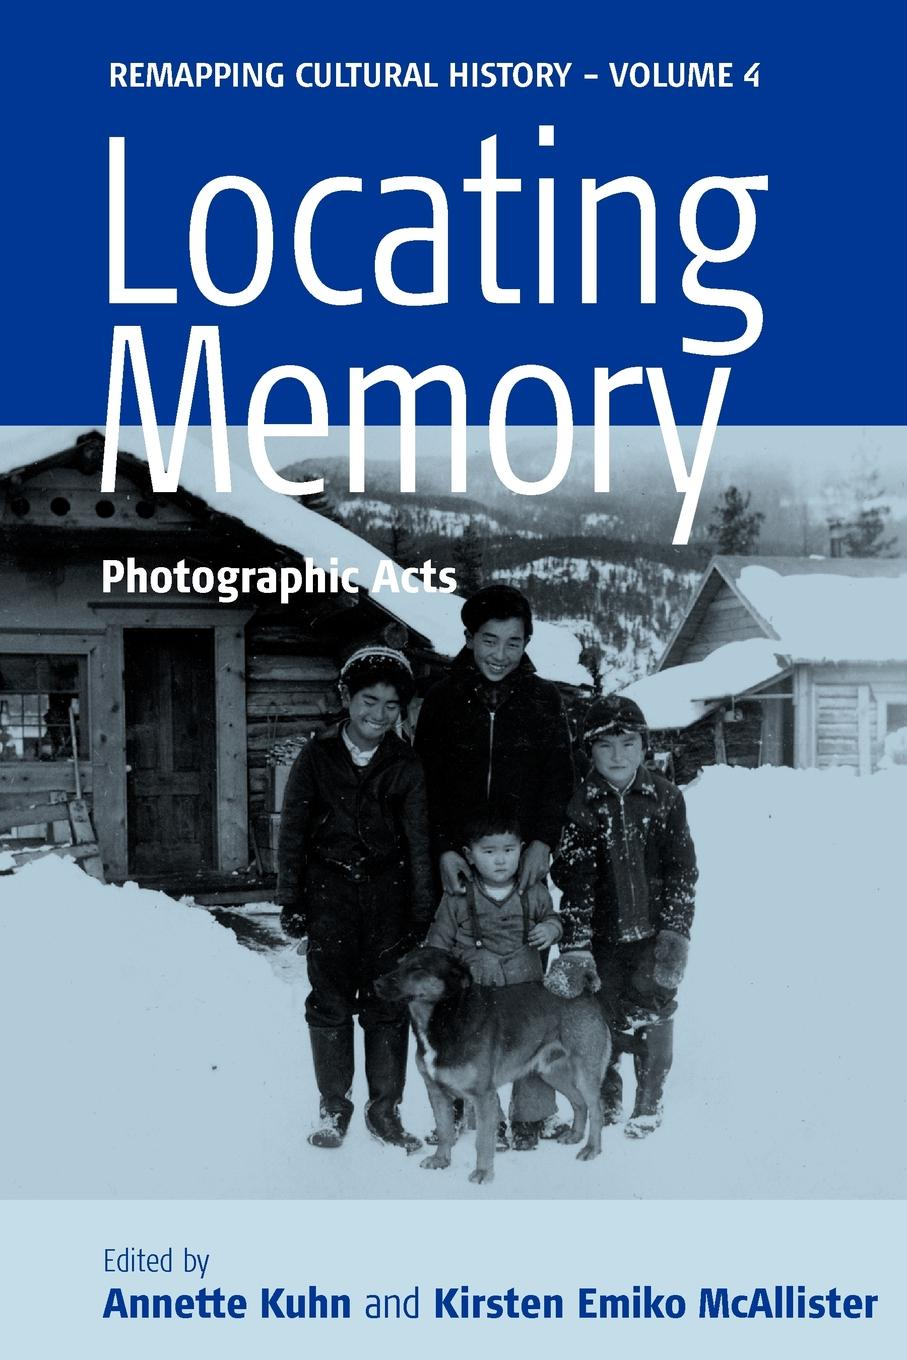 Locating Memory. Photographic Acts